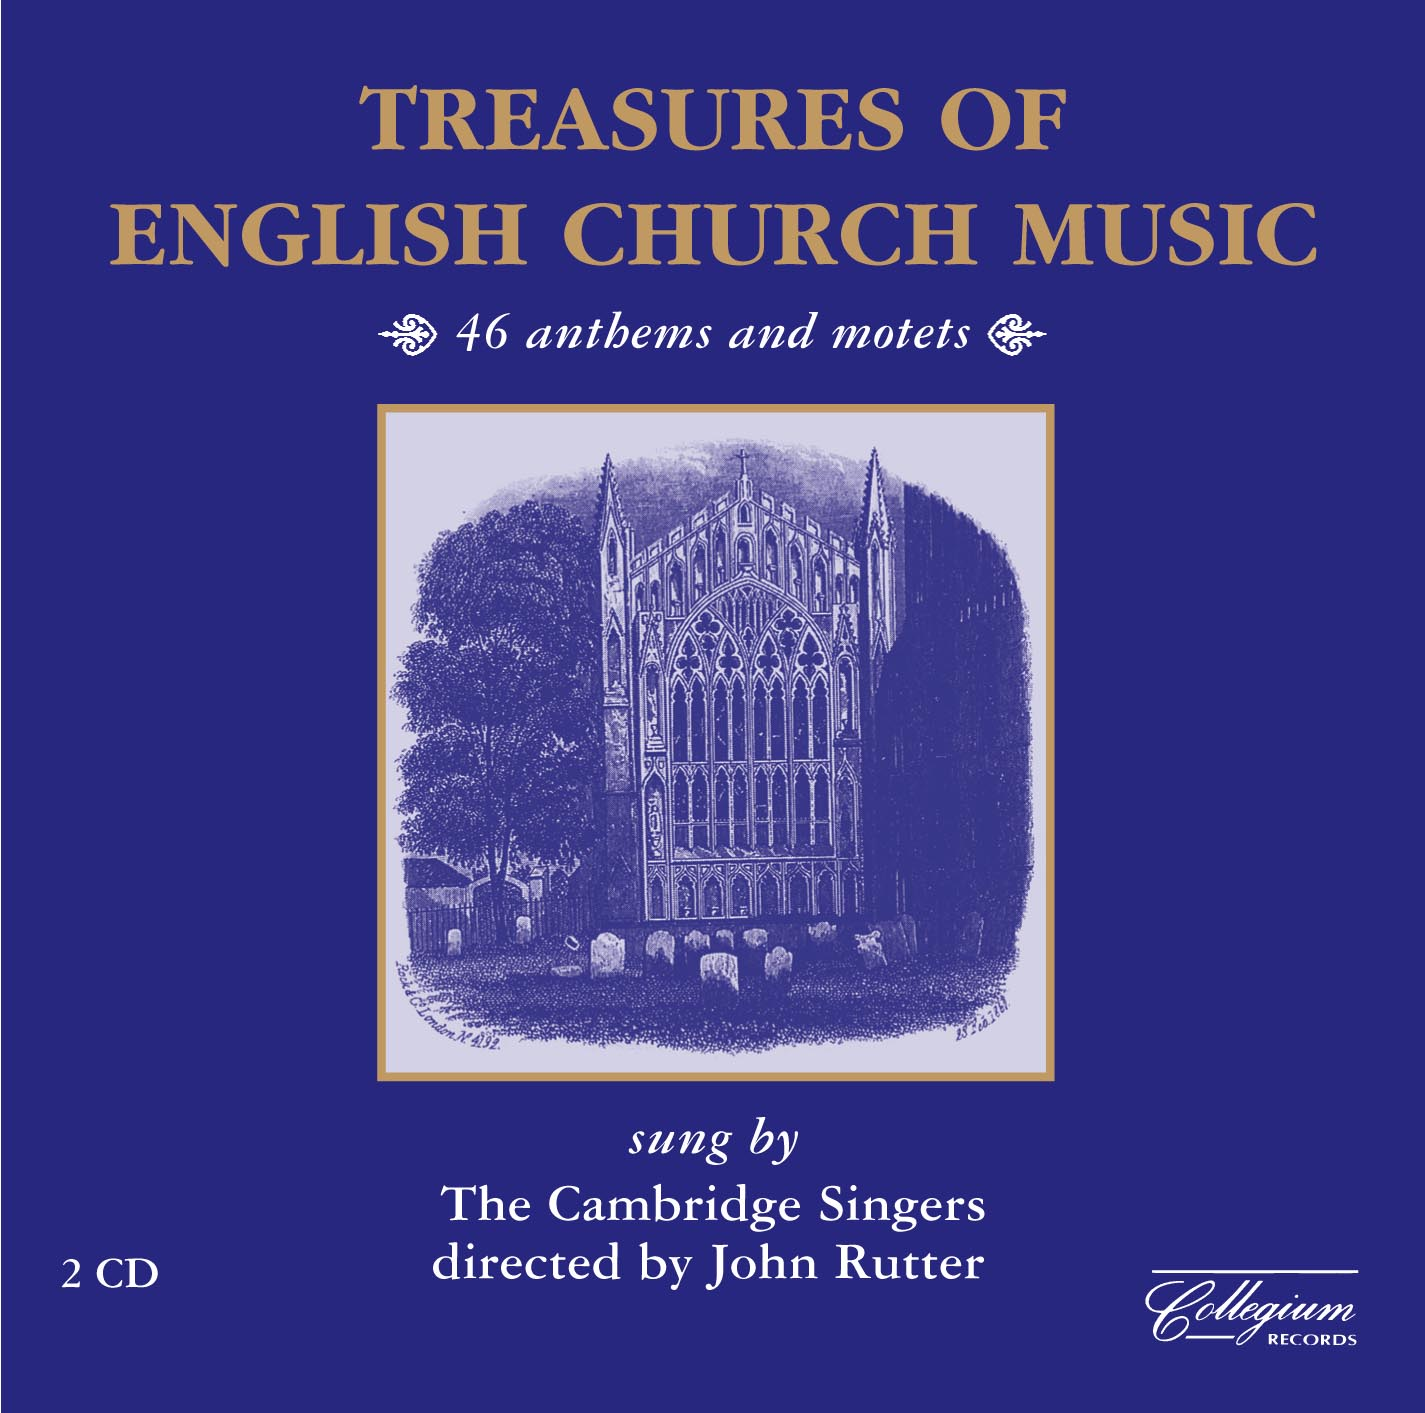 Treasures of English Church Music